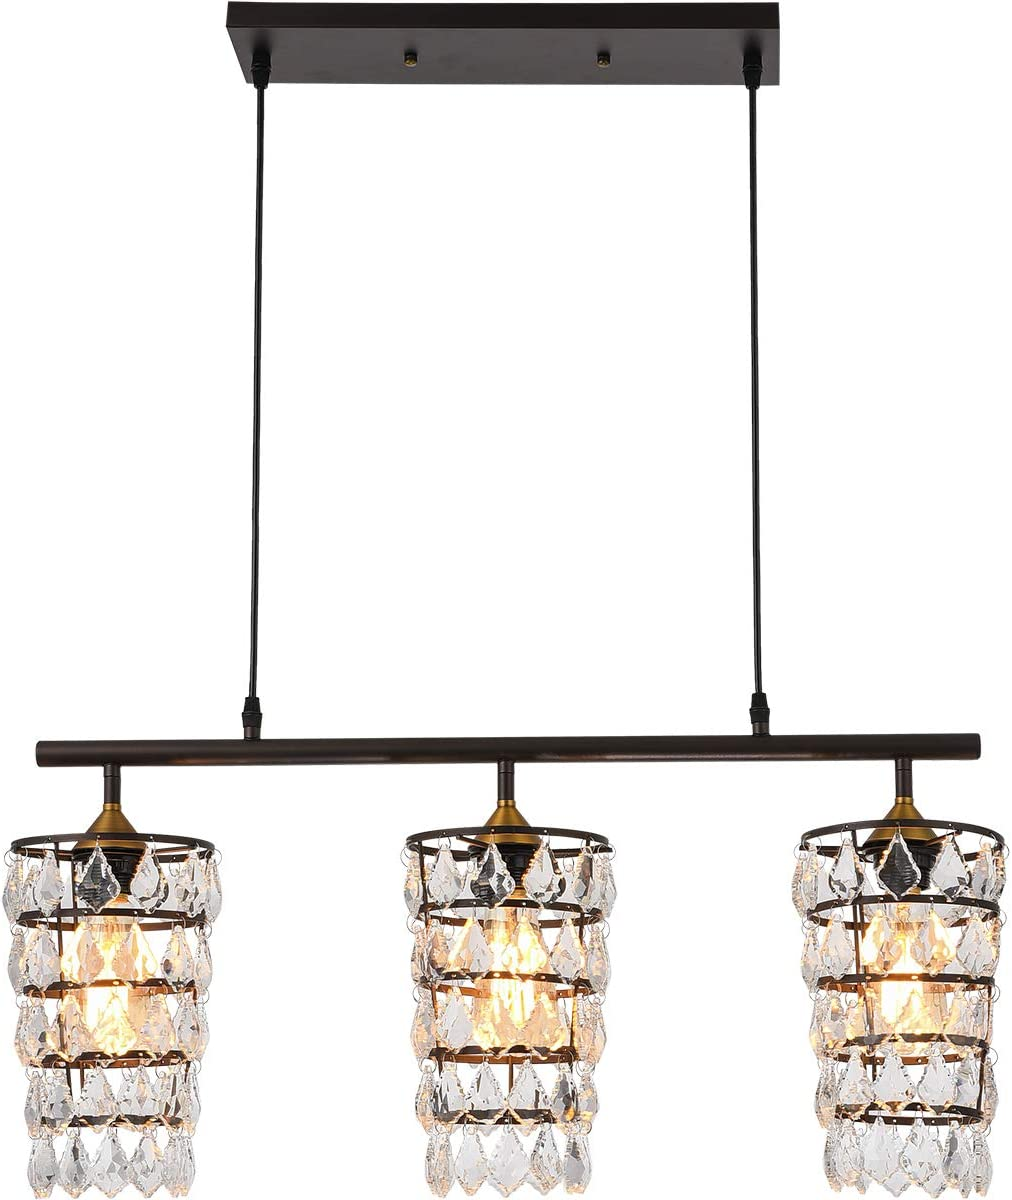 SEEBLEN Crystal Chandeliers Brown Finish Pendant Light with Ajustable Cord 3 Light Glass Beads Hanging Ceiling Light Fixtures